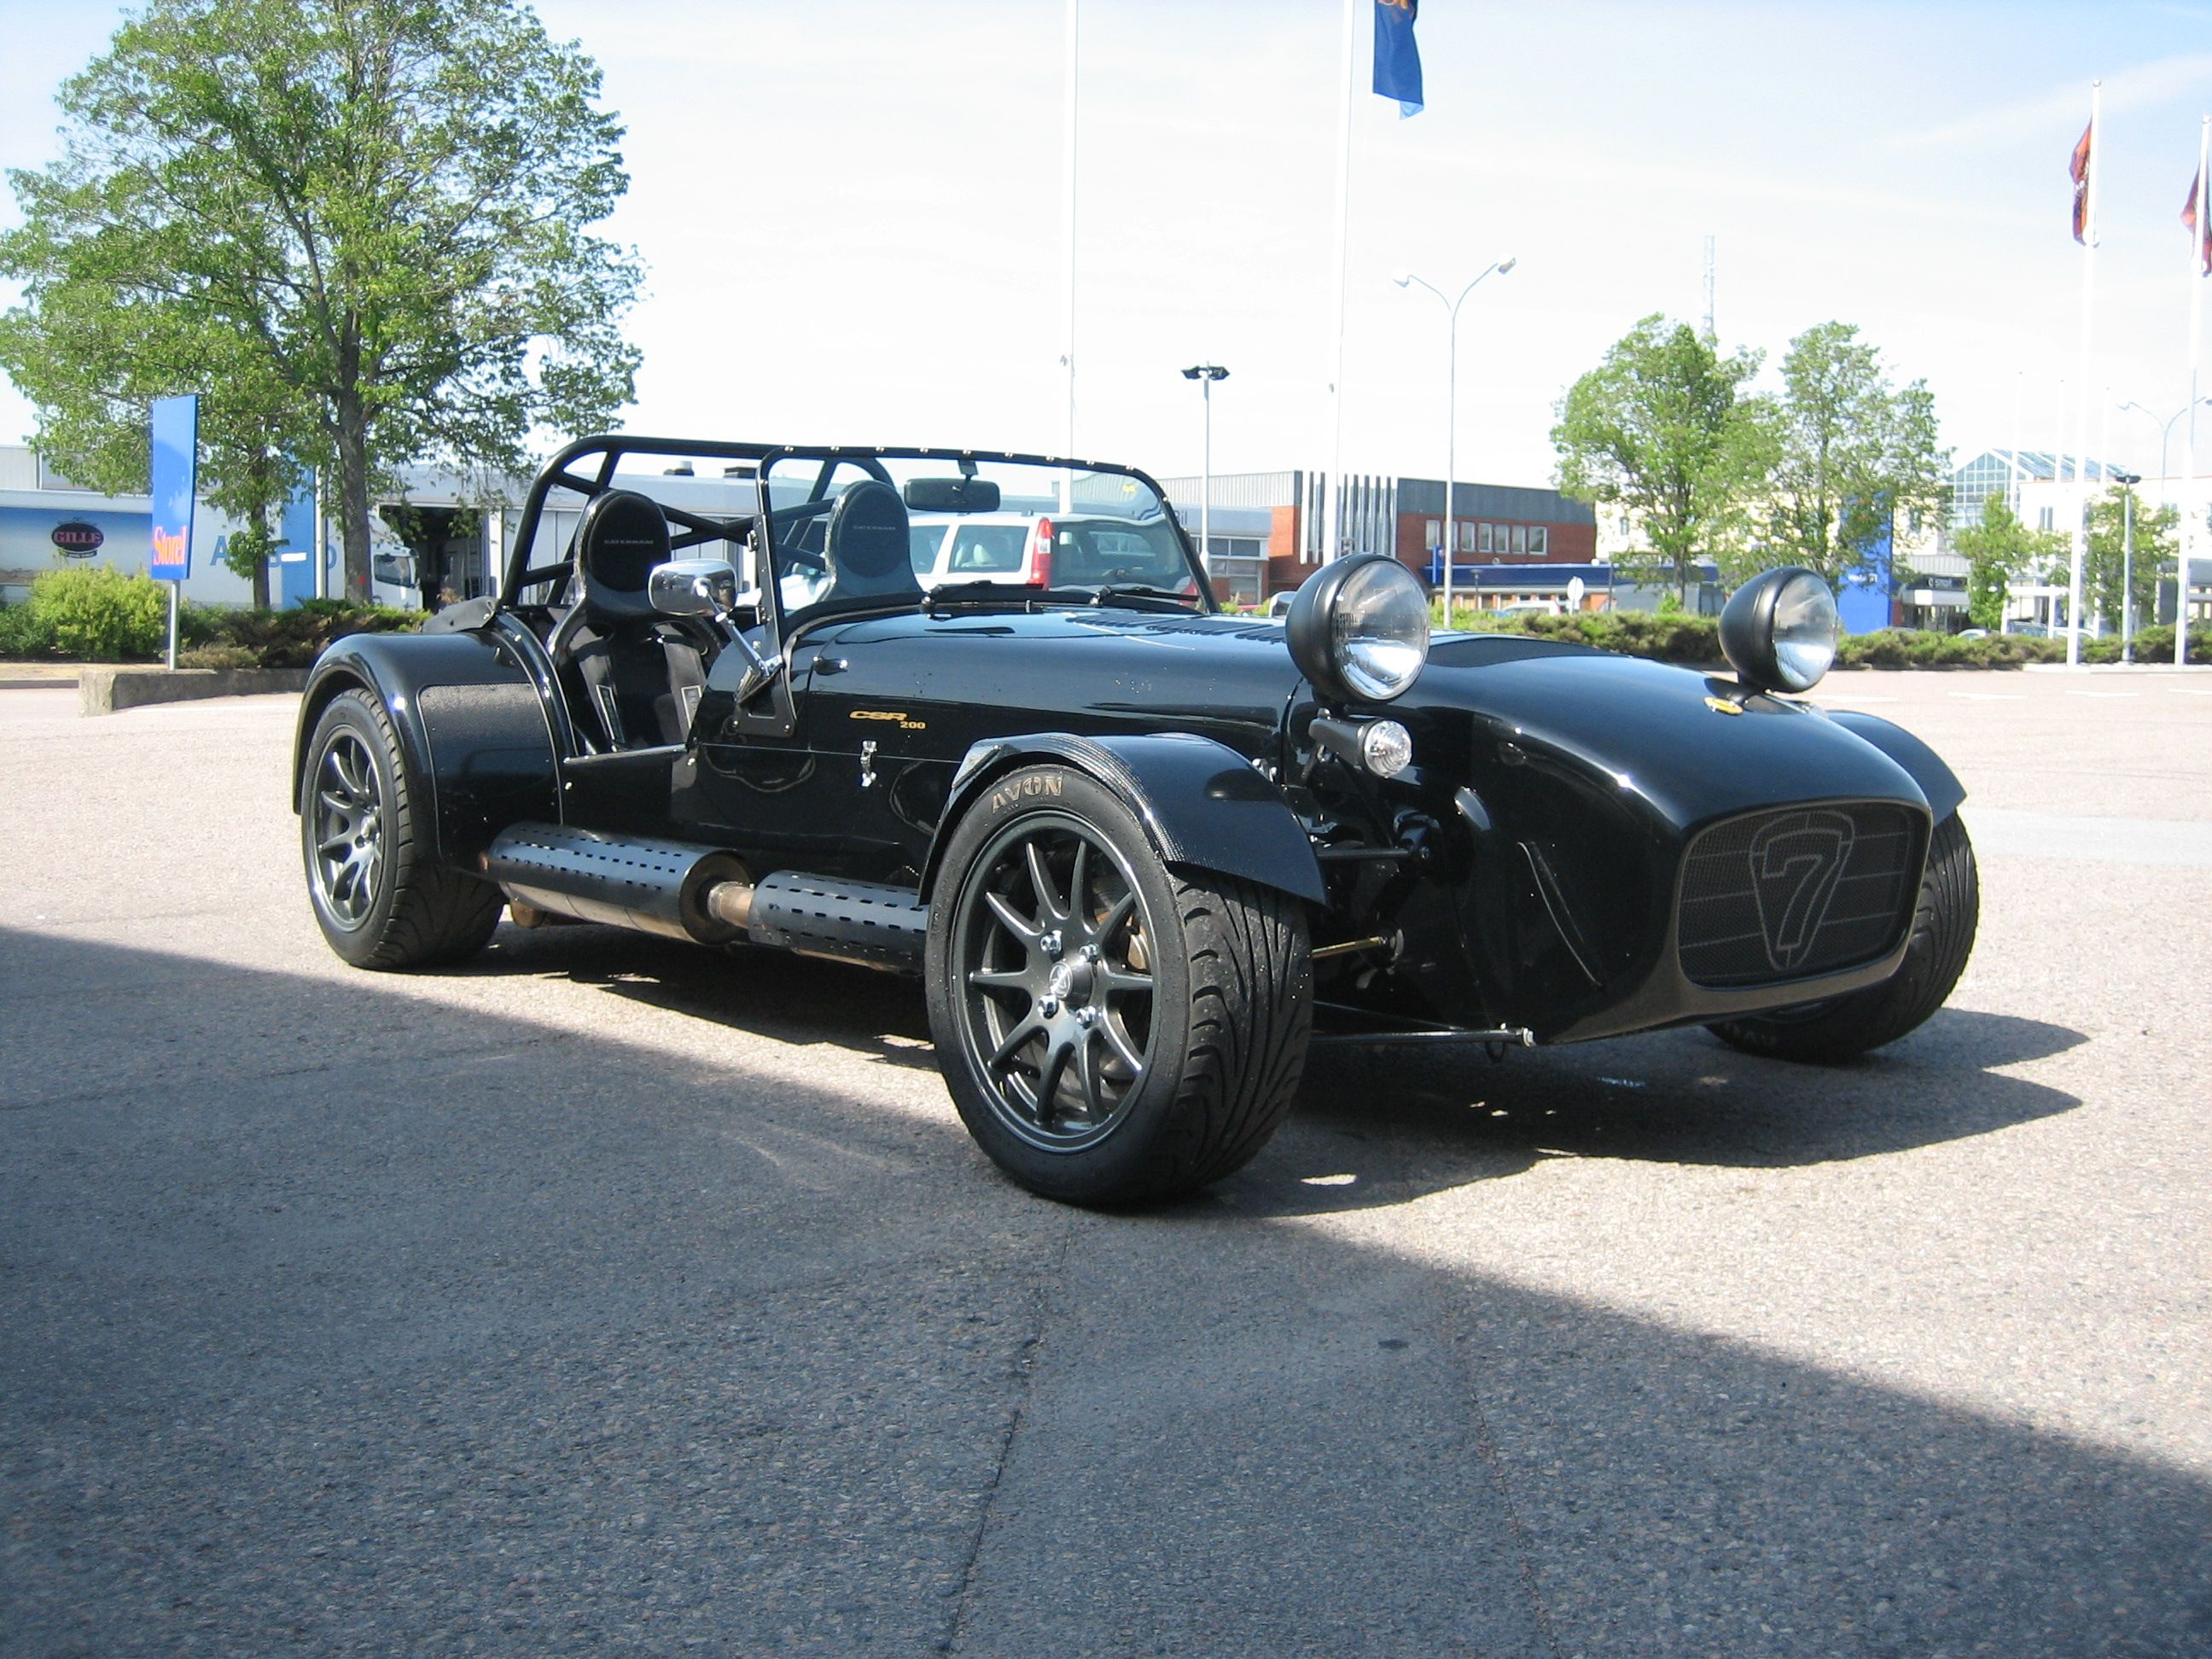 Lotus 7 kit car usa - Caterham Super 7 For Blake Mumaw Cause I Know He Wants One Kit Carscar